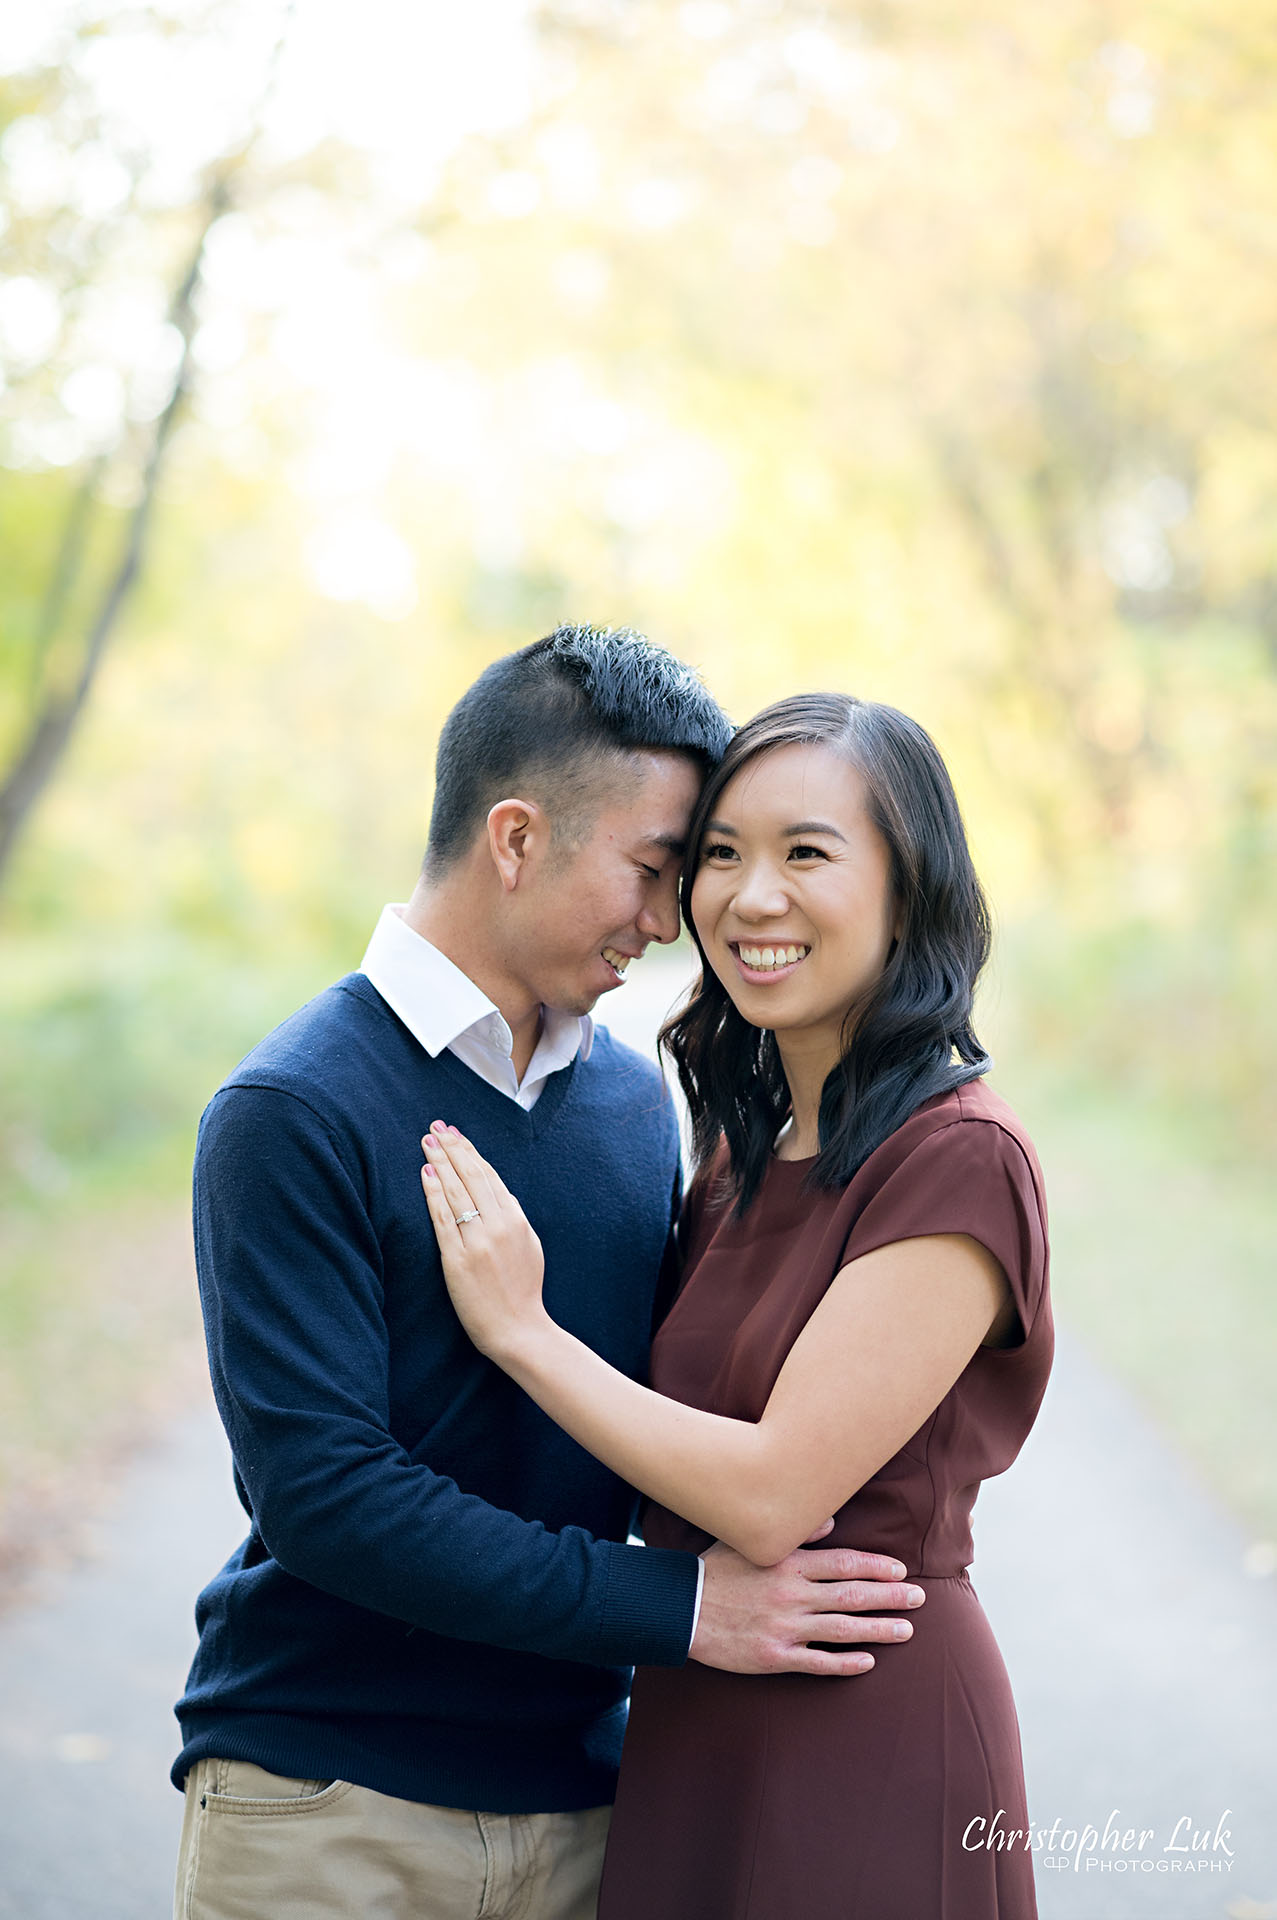 Christopher Luk Toronto Wedding Engagement Session Photographer Autumn Fall Leaves Natural Candid Photojournalistic Bride Groom Hugging Hug Holding Each Other Together Pathway Hiking Trail Detail